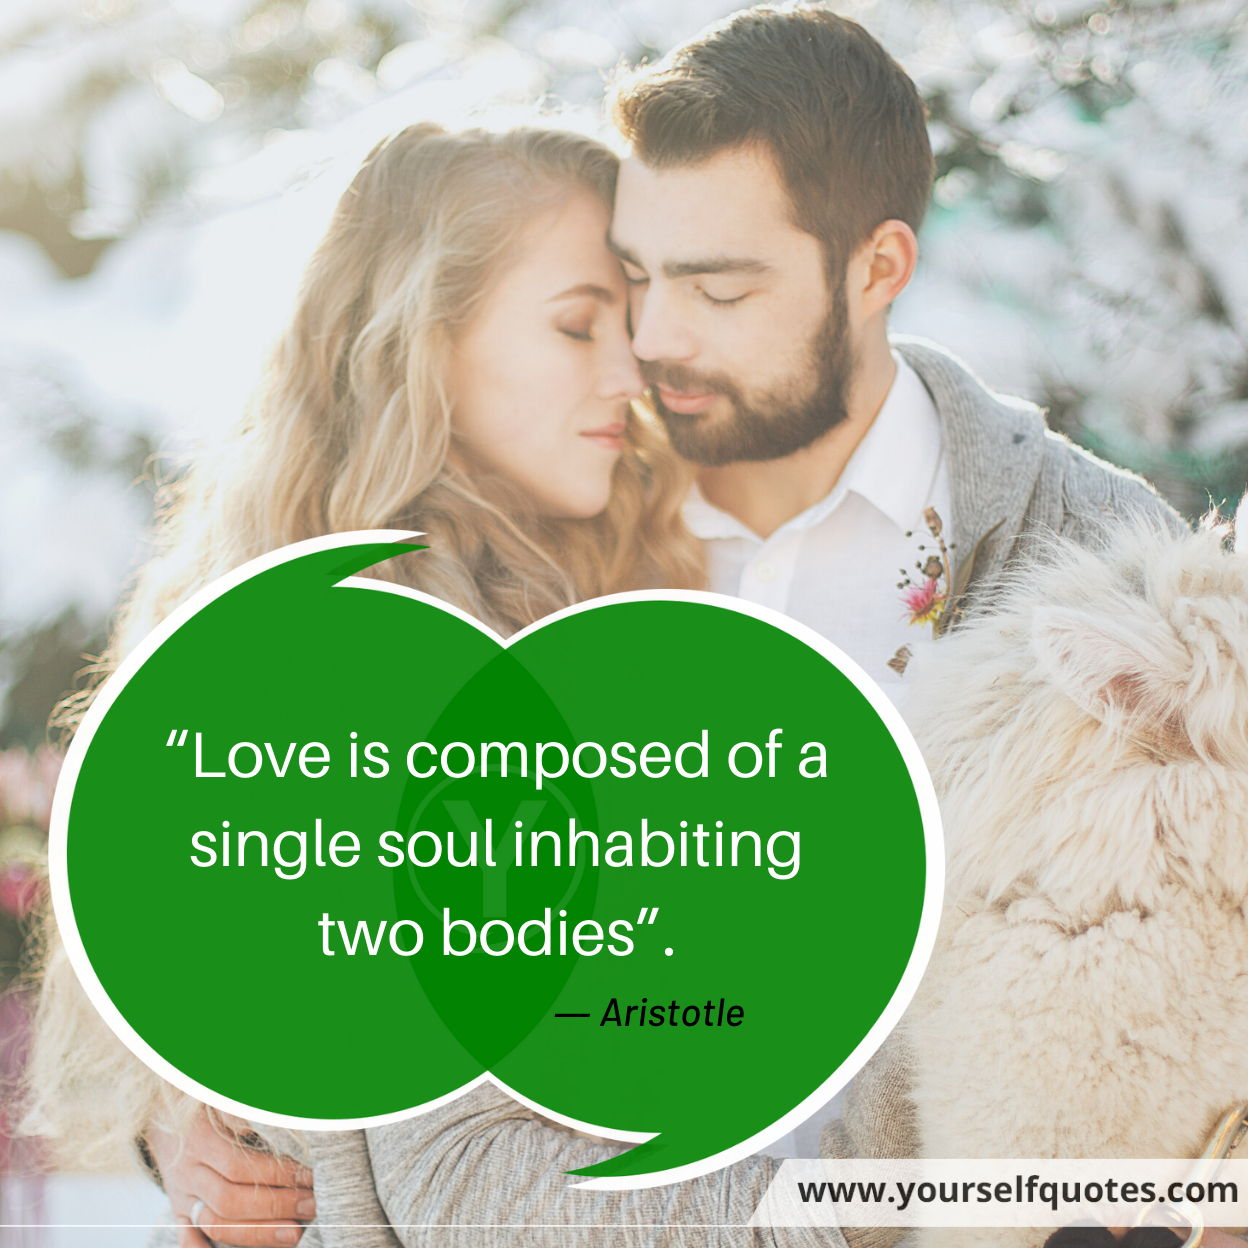 Quotes on Love by Aristotle